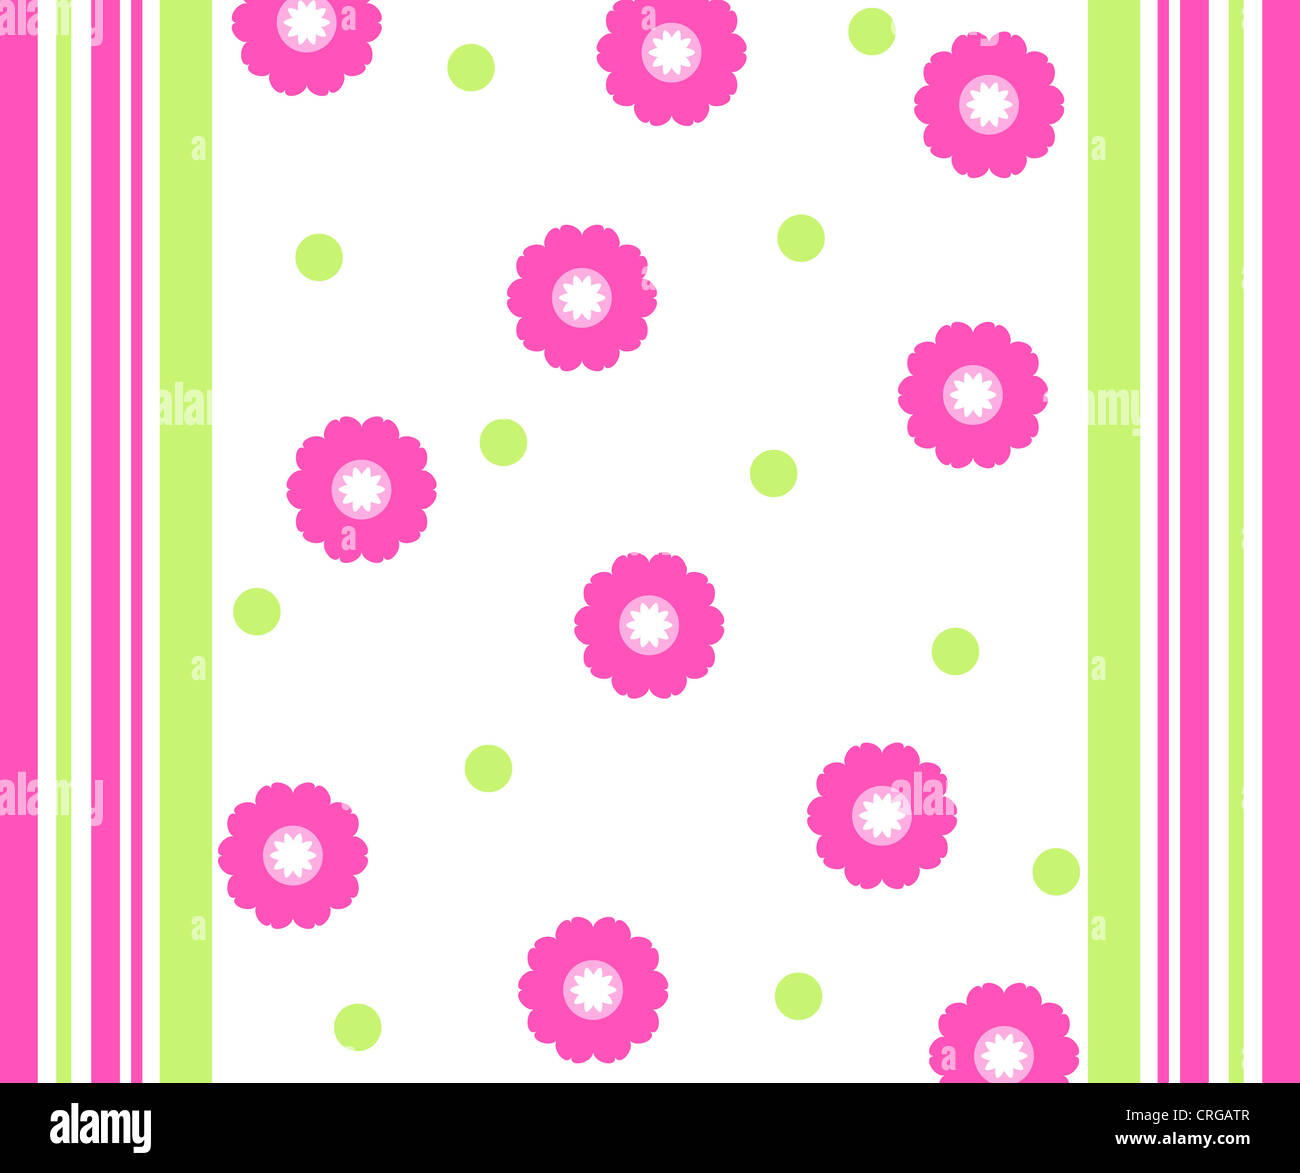 Stripes and floral pattern in pink and green colors Stock Photo